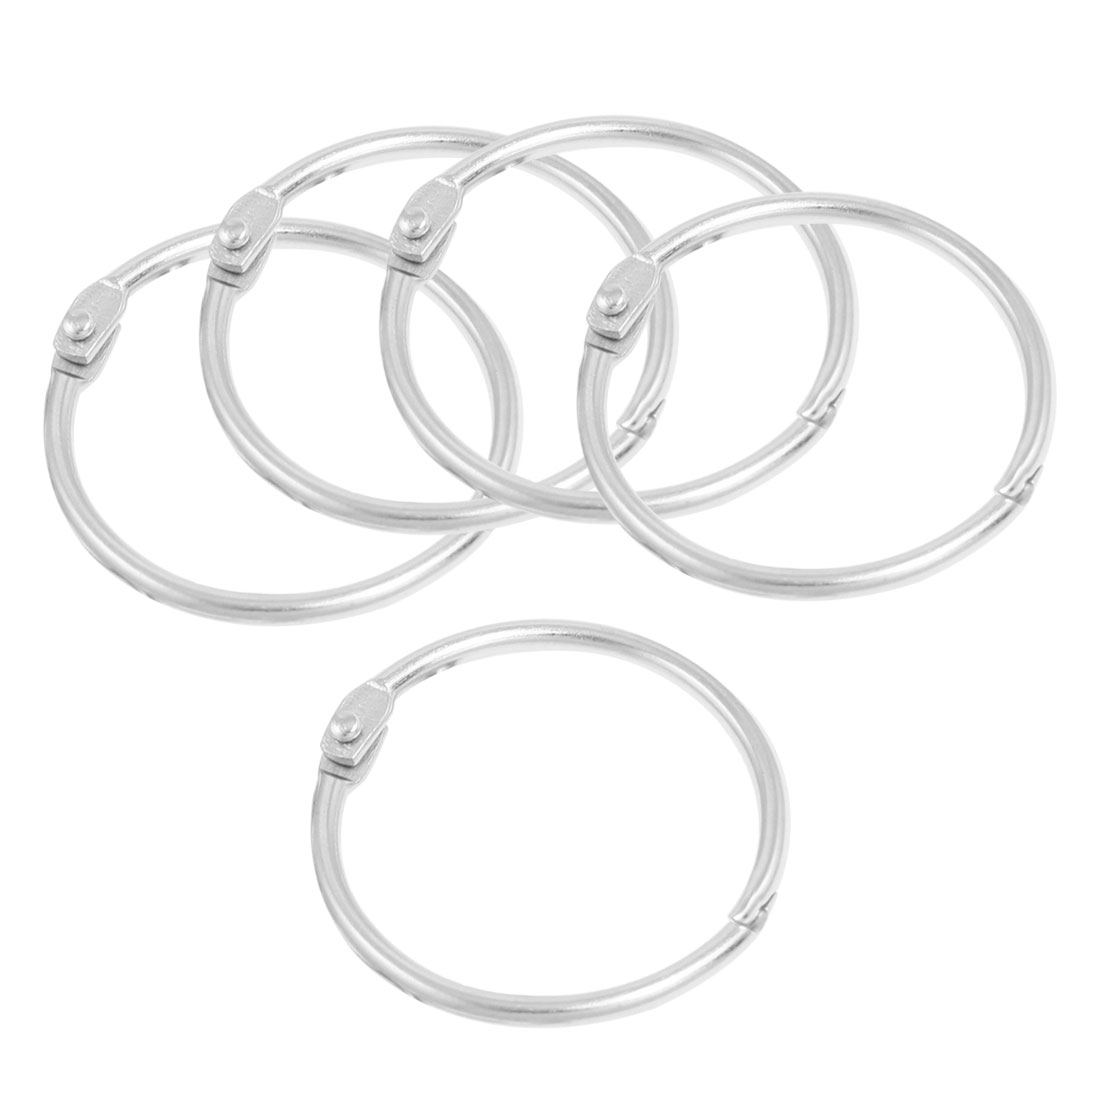 "5x Silver Tone 1.5"" Inner Dia Looseleaf Binder Rings for Scrapbooking Book"